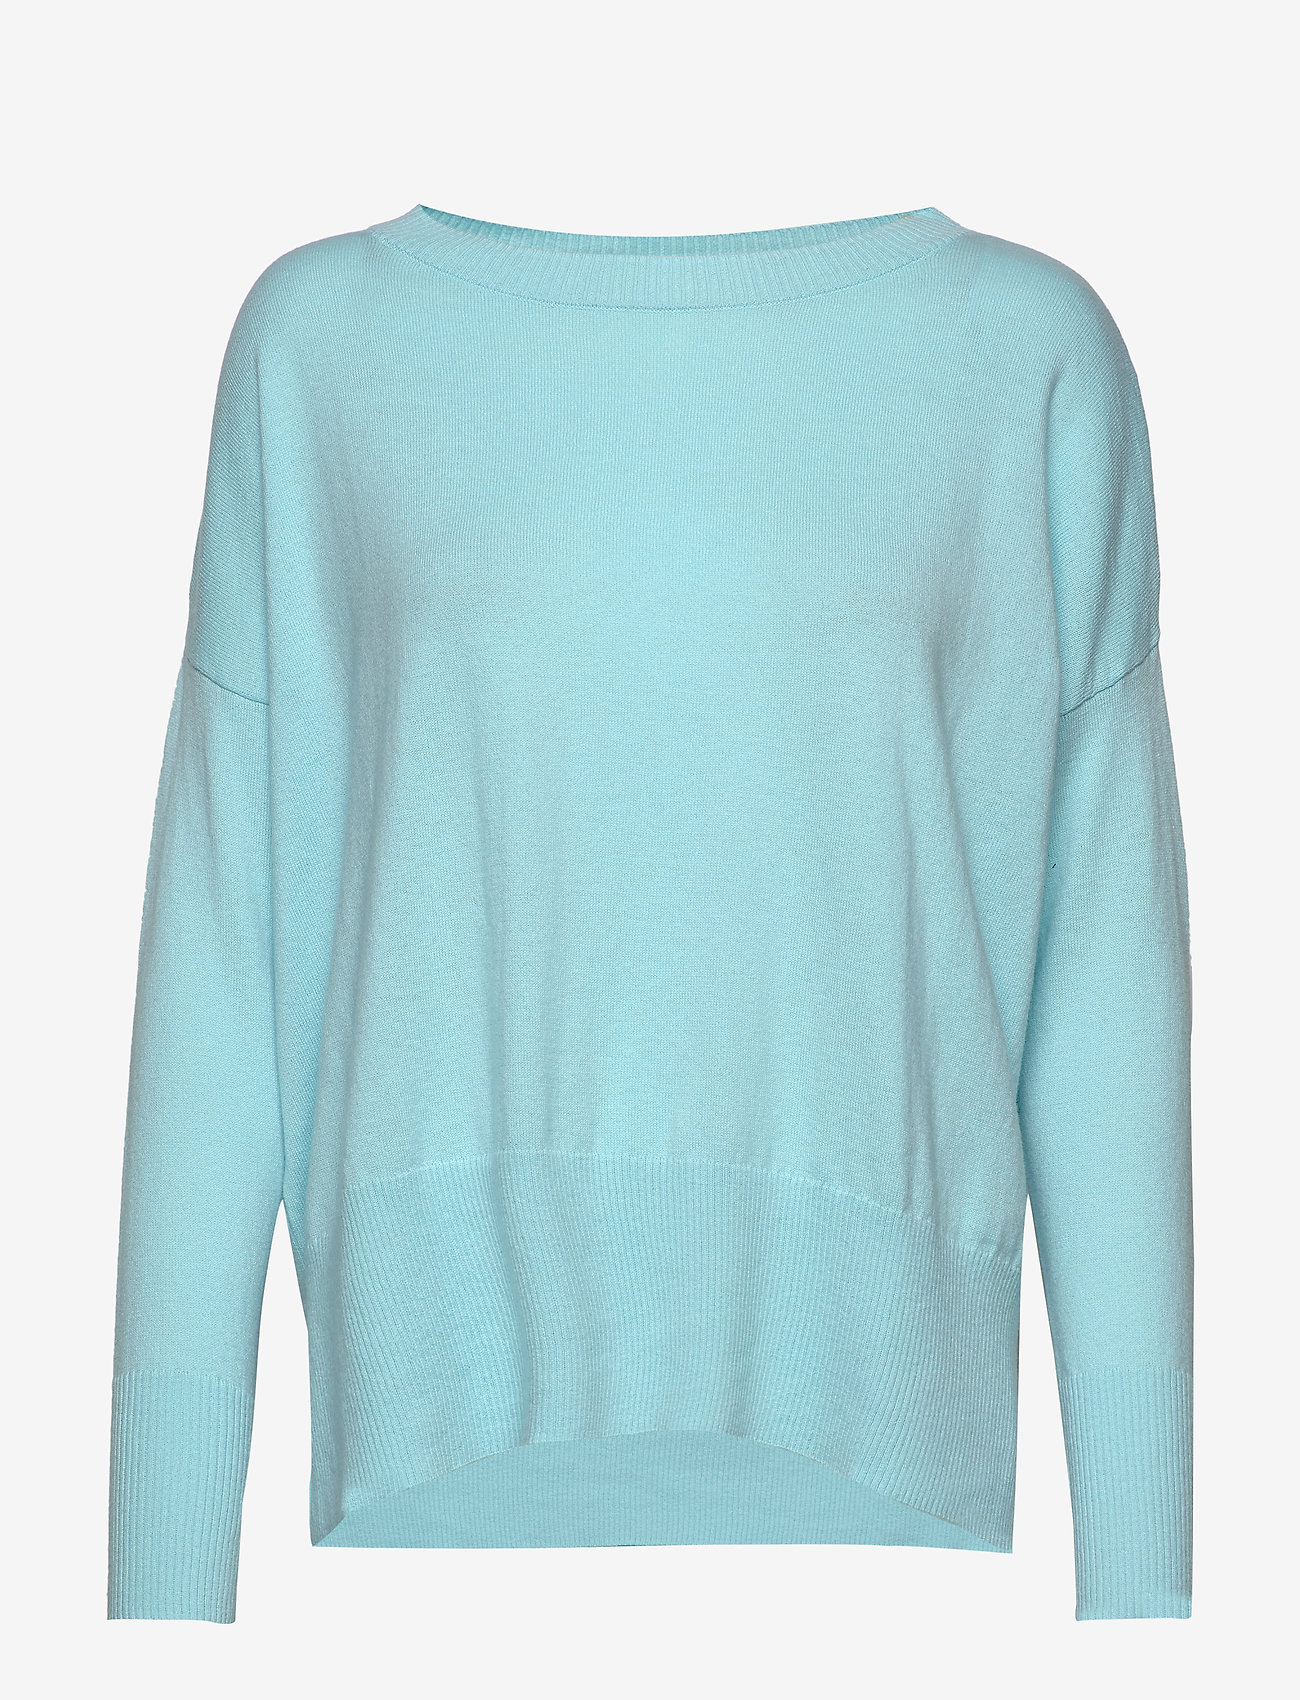 Nanso - Ladies knit sweater, Villis - neulepuserot - light blue - 0